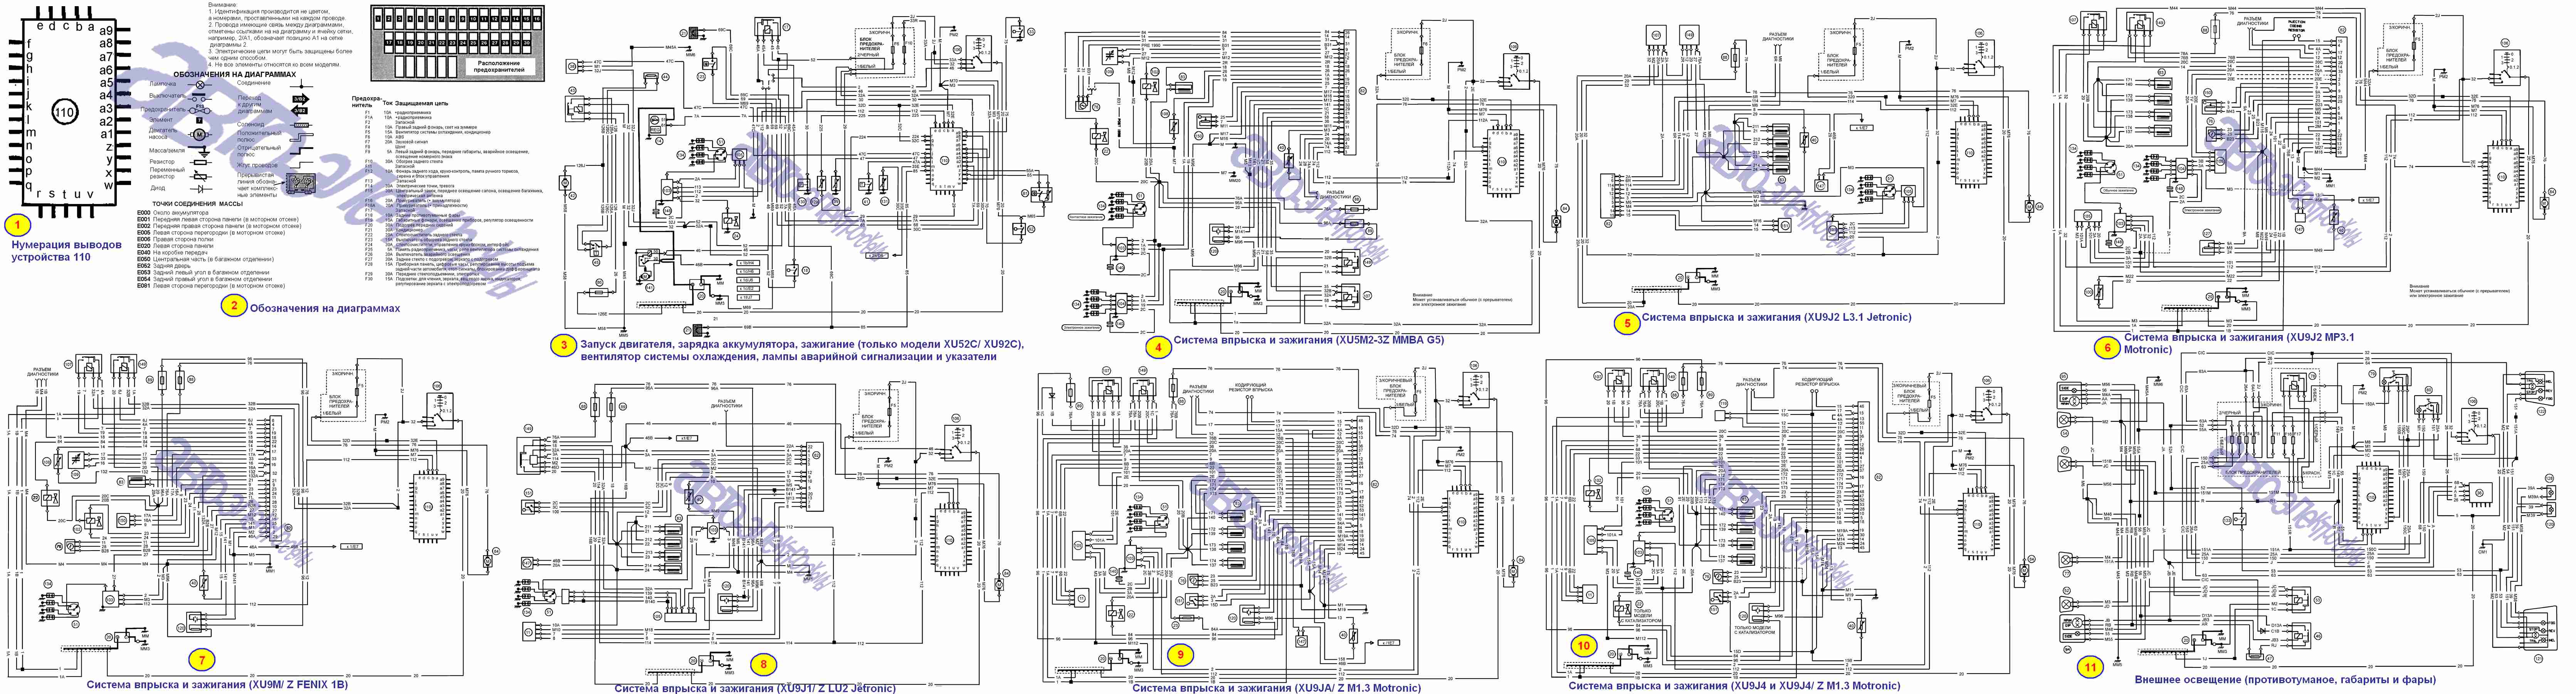 Infiniti G37 Mirror Wiring Diagram likewise 2006 Chevy Cobalt Wiring Diagram as well 1989 Mustang Fuel Pump Wiring Diagram in addition 2011 Ford Fusion Wiring Diagram Wiring Diagrams also 2007 Chevrolet Trailblazer Electronic Suspension System Circuit. on mercury milan stereo wiring diagram